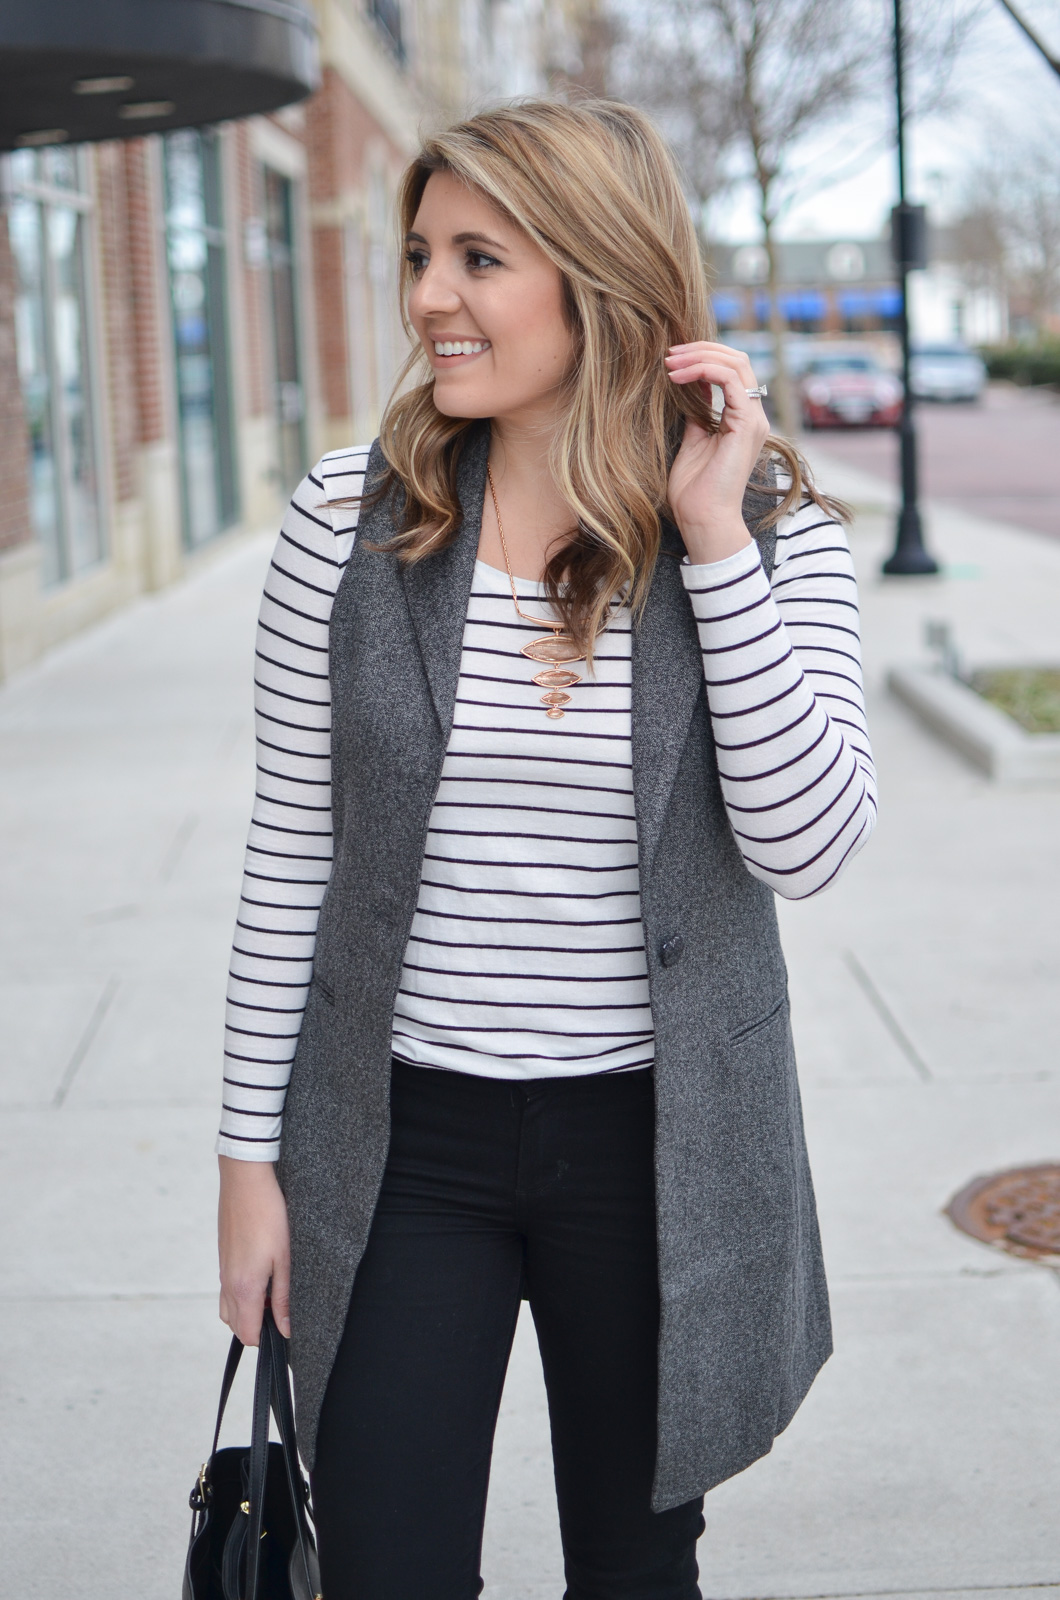 long grey vest outfit - stripe tee with long gray vest. Want more cute casual outfits? Head to bylaurenm.com!